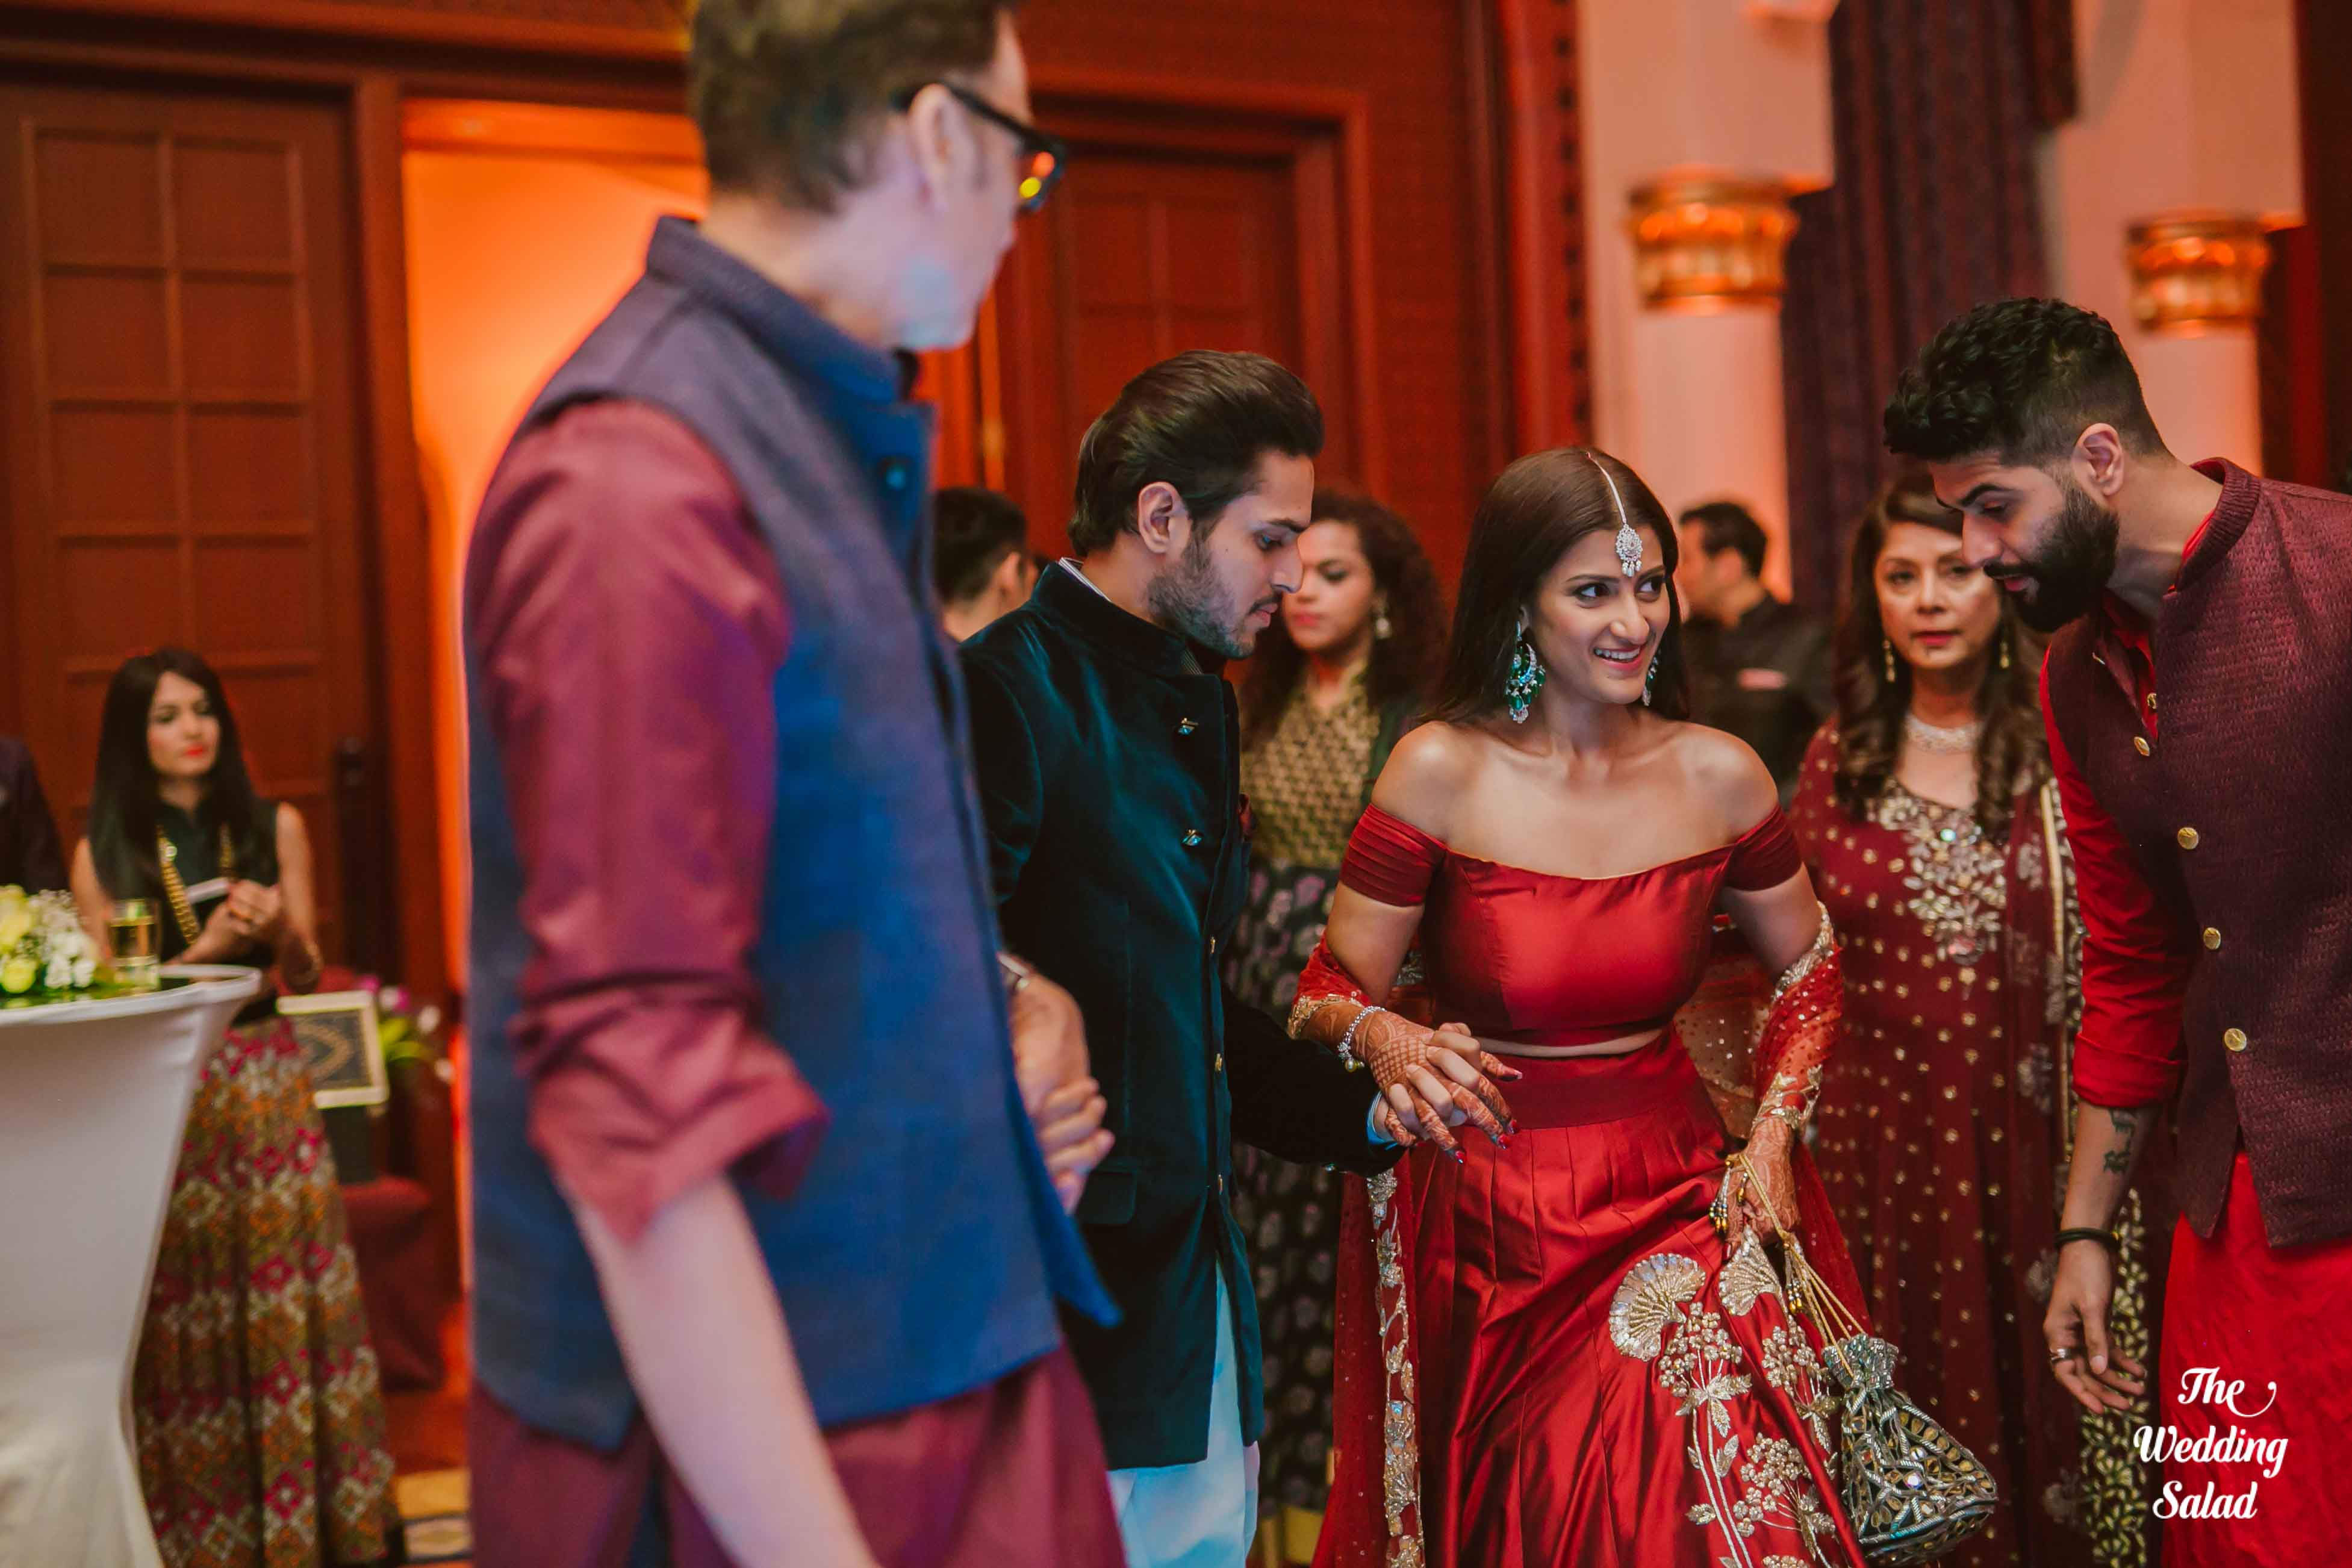 the bride sasha!:the wedding salad, manish malhotra, arpita mehta, sabyasachi couture pvt ltd